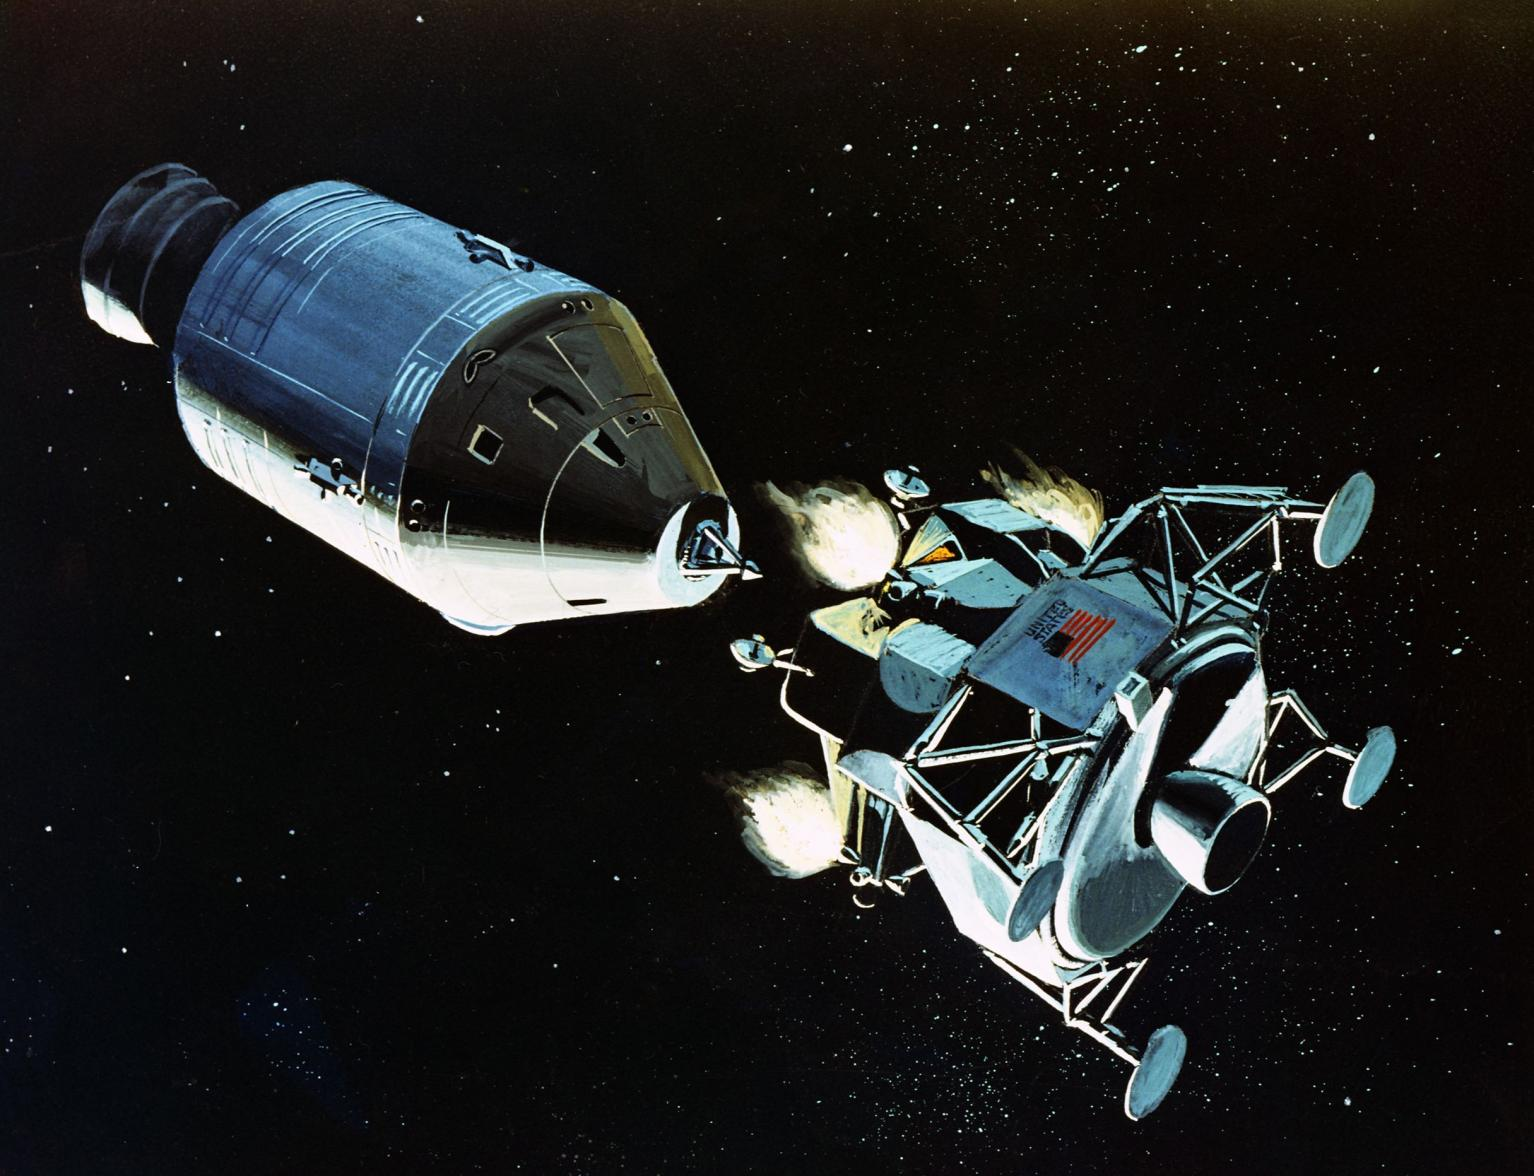 spacecraft in lunar orbit - photo #41